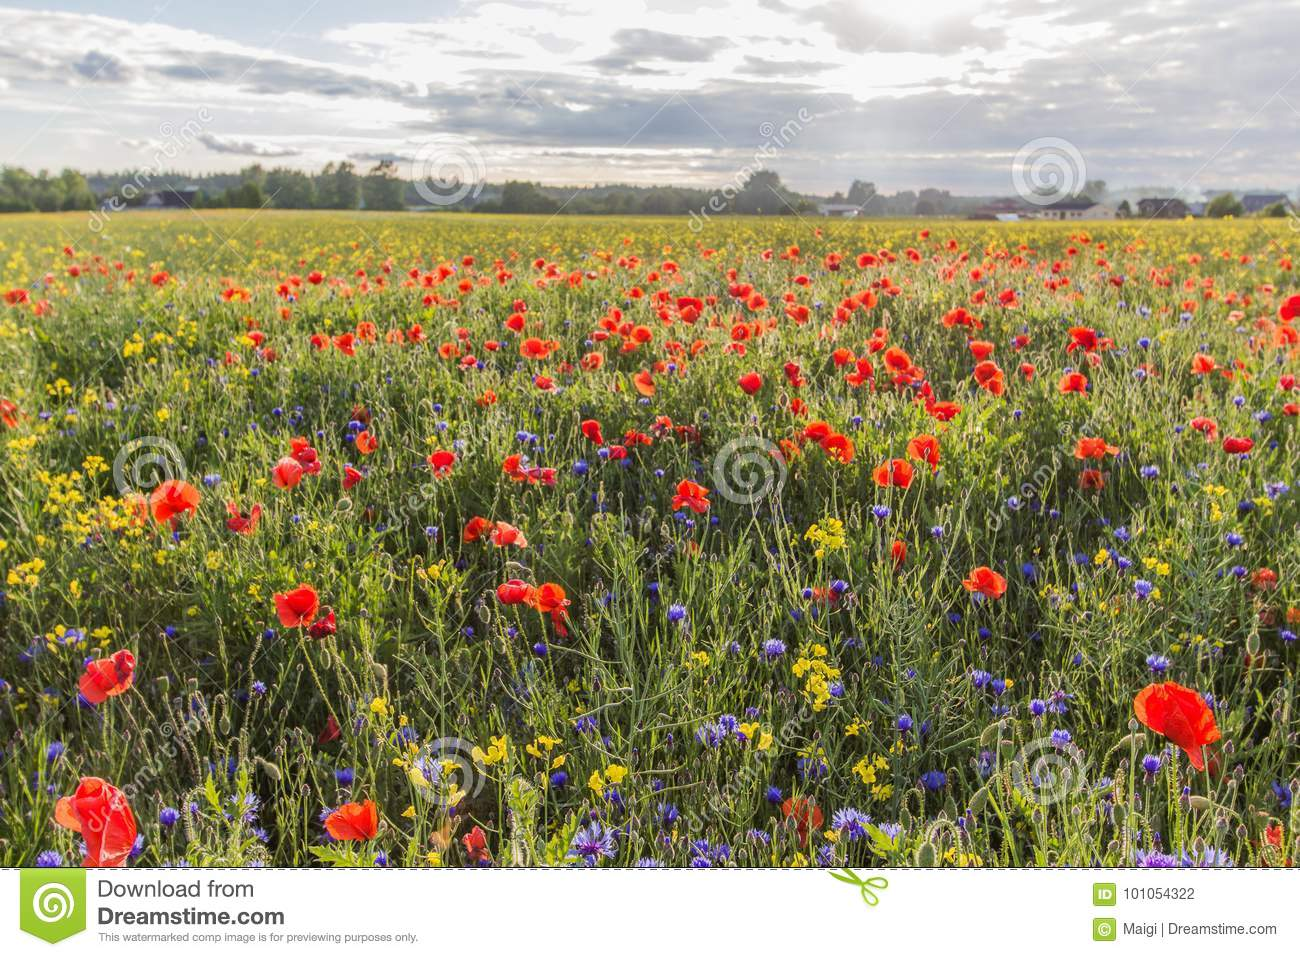 Download Red Poppies On The Green Field Stock Photo - Image of cyanus, summertime: 101054322